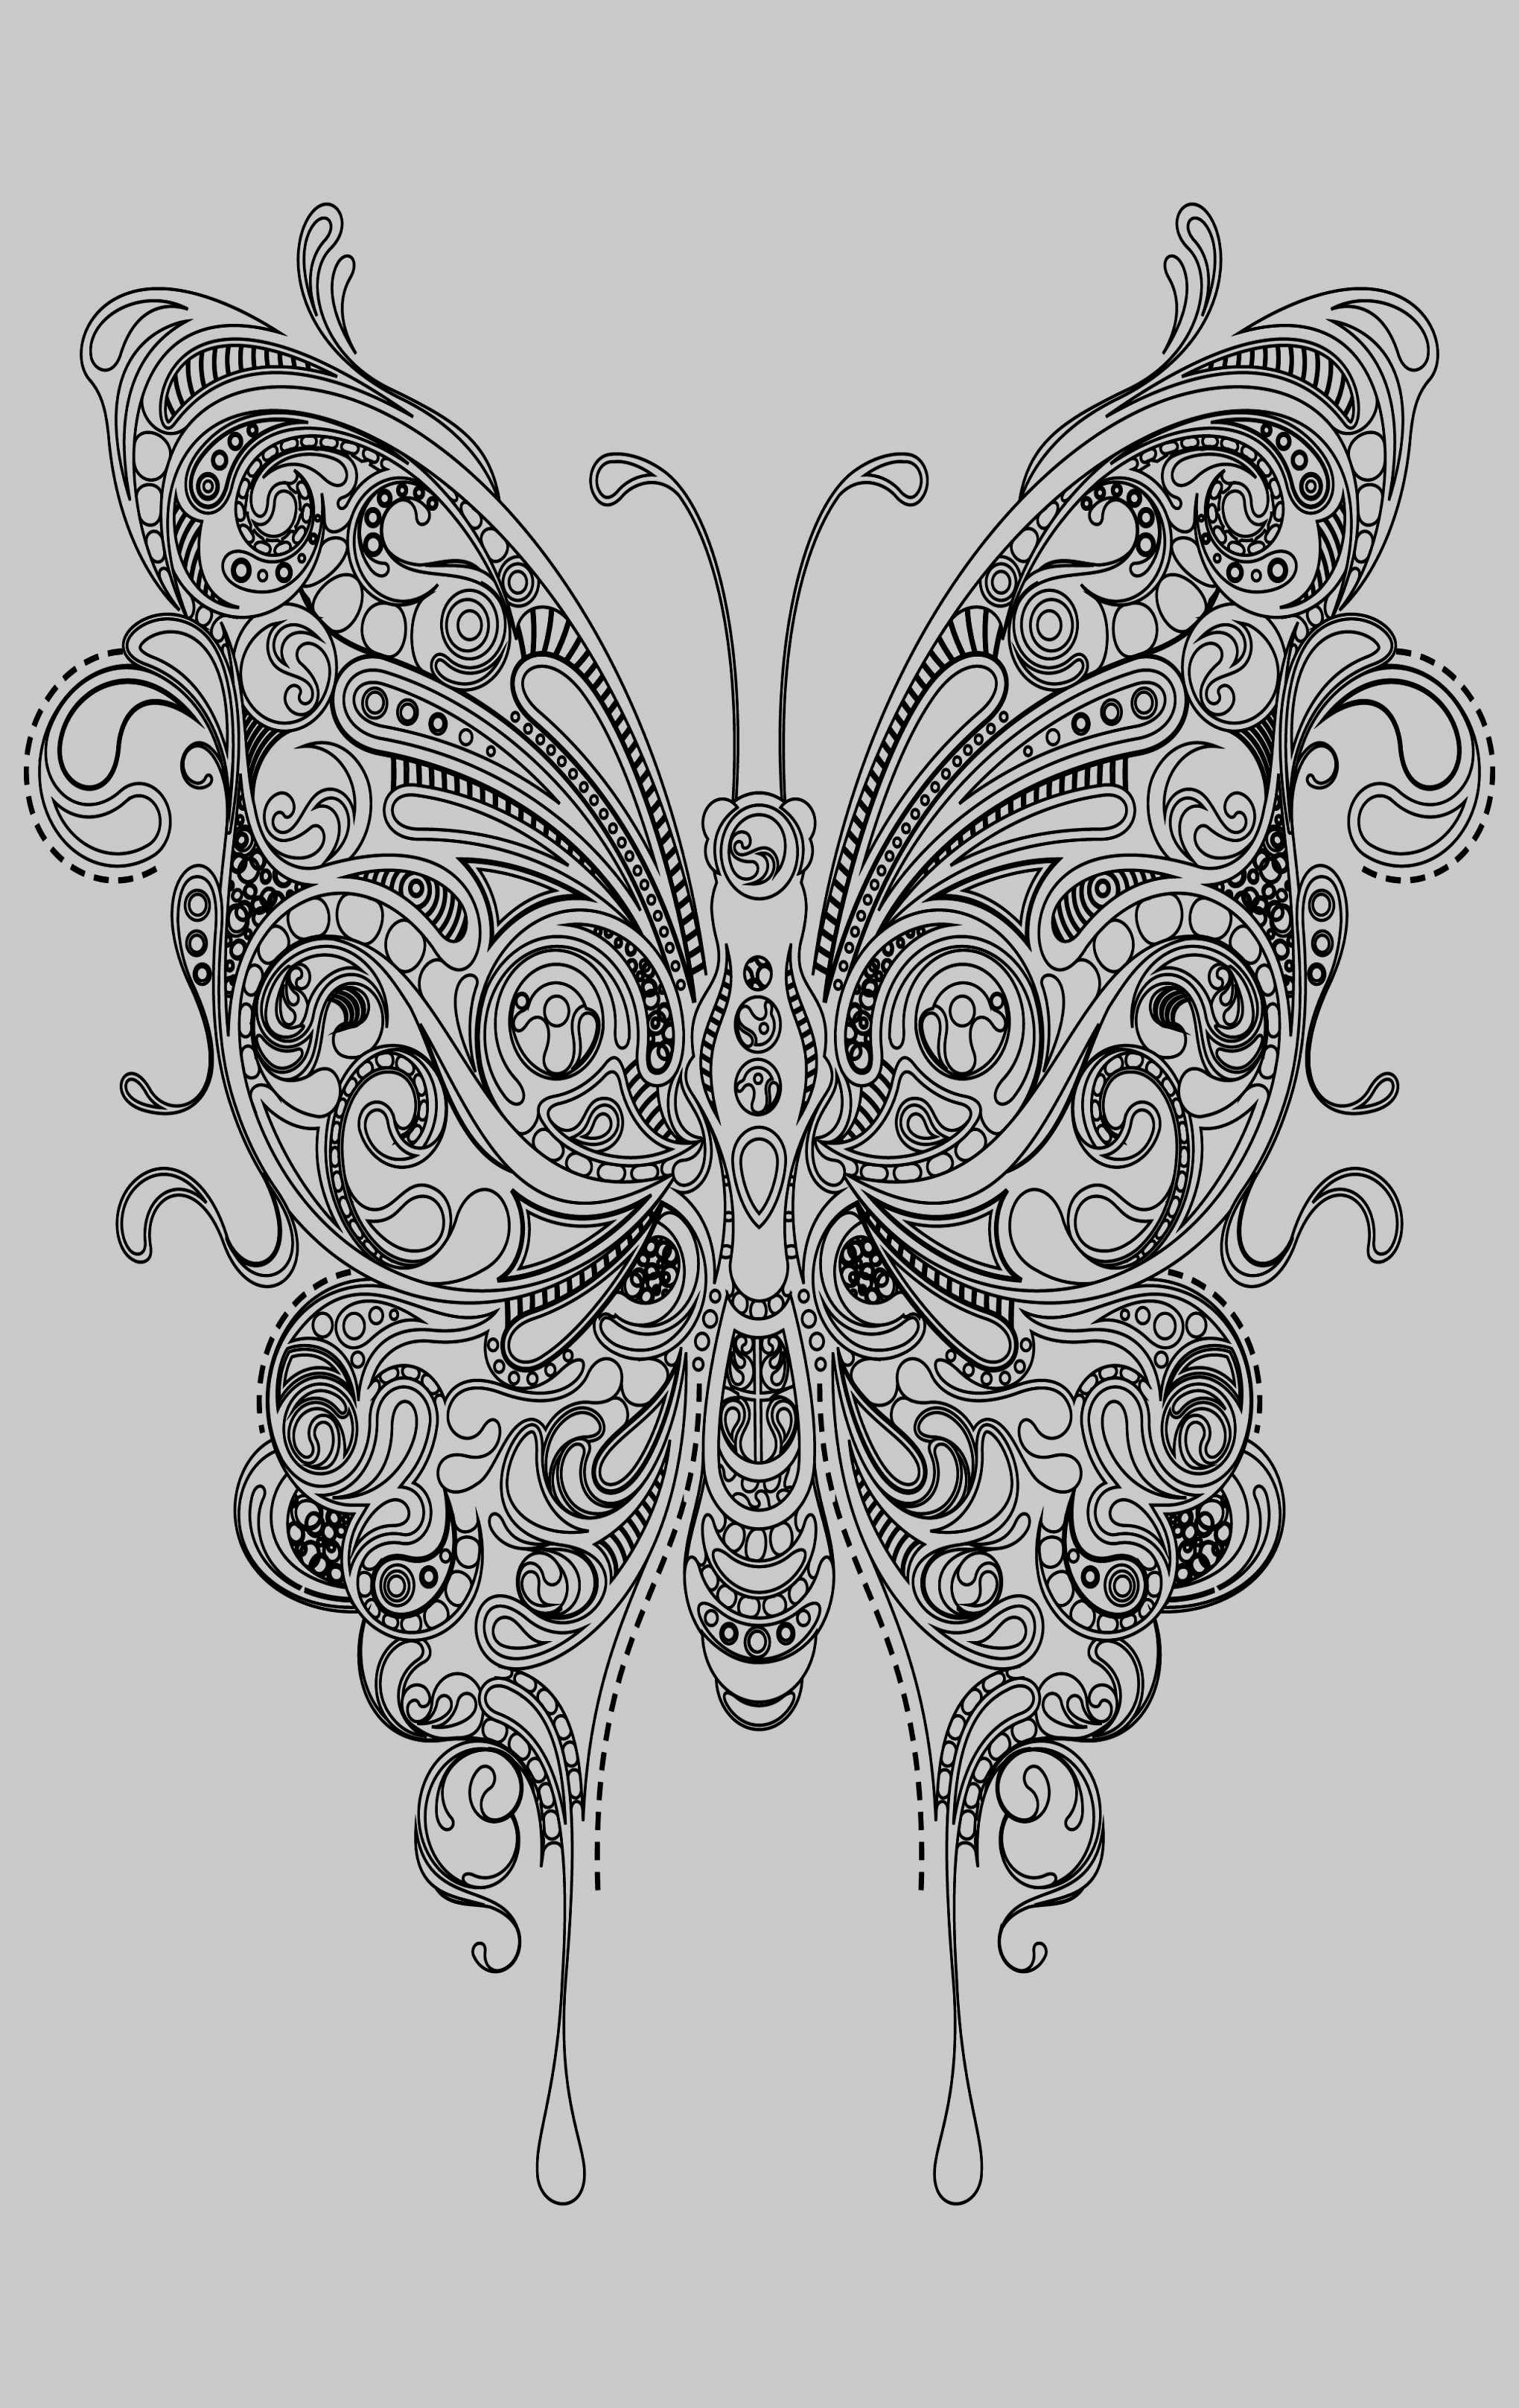 25 Amazing Photo Of Butterflies Coloring Pages Davemelillo Com Coloring Pages Inspirational Mandala Coloring Pages Butterfly Coloring Page [ 3234 x 2040 Pixel ]